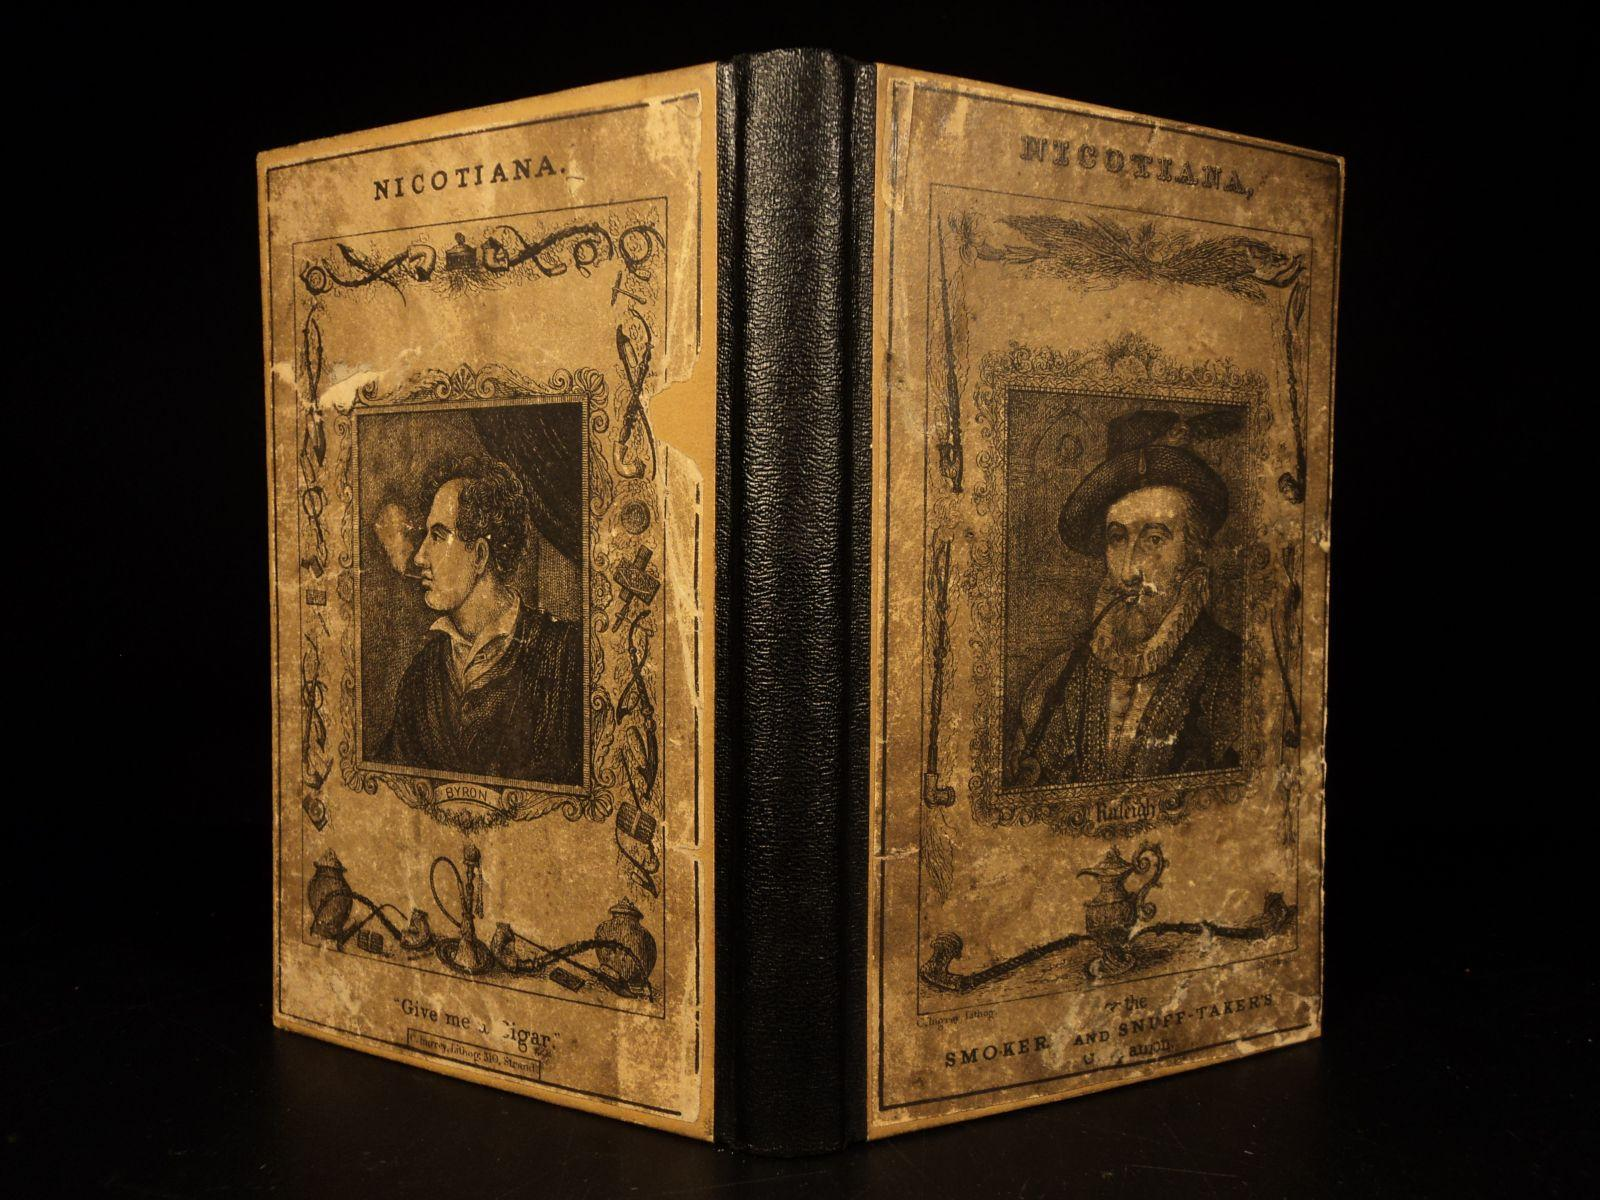 """1832 1st ed Nicotiana Smokers Companion Cigars Cigarettes Smoking TOBACCO Poetry MELLER, Henry James Near Fine Hardcover 1832 1st ed Nicotiana Smokers Companion Cigars Cigarettes Smoking TOBACCO Poetry """"Weed of the strange power, Weed of the earth Killer of dullness- Par"""